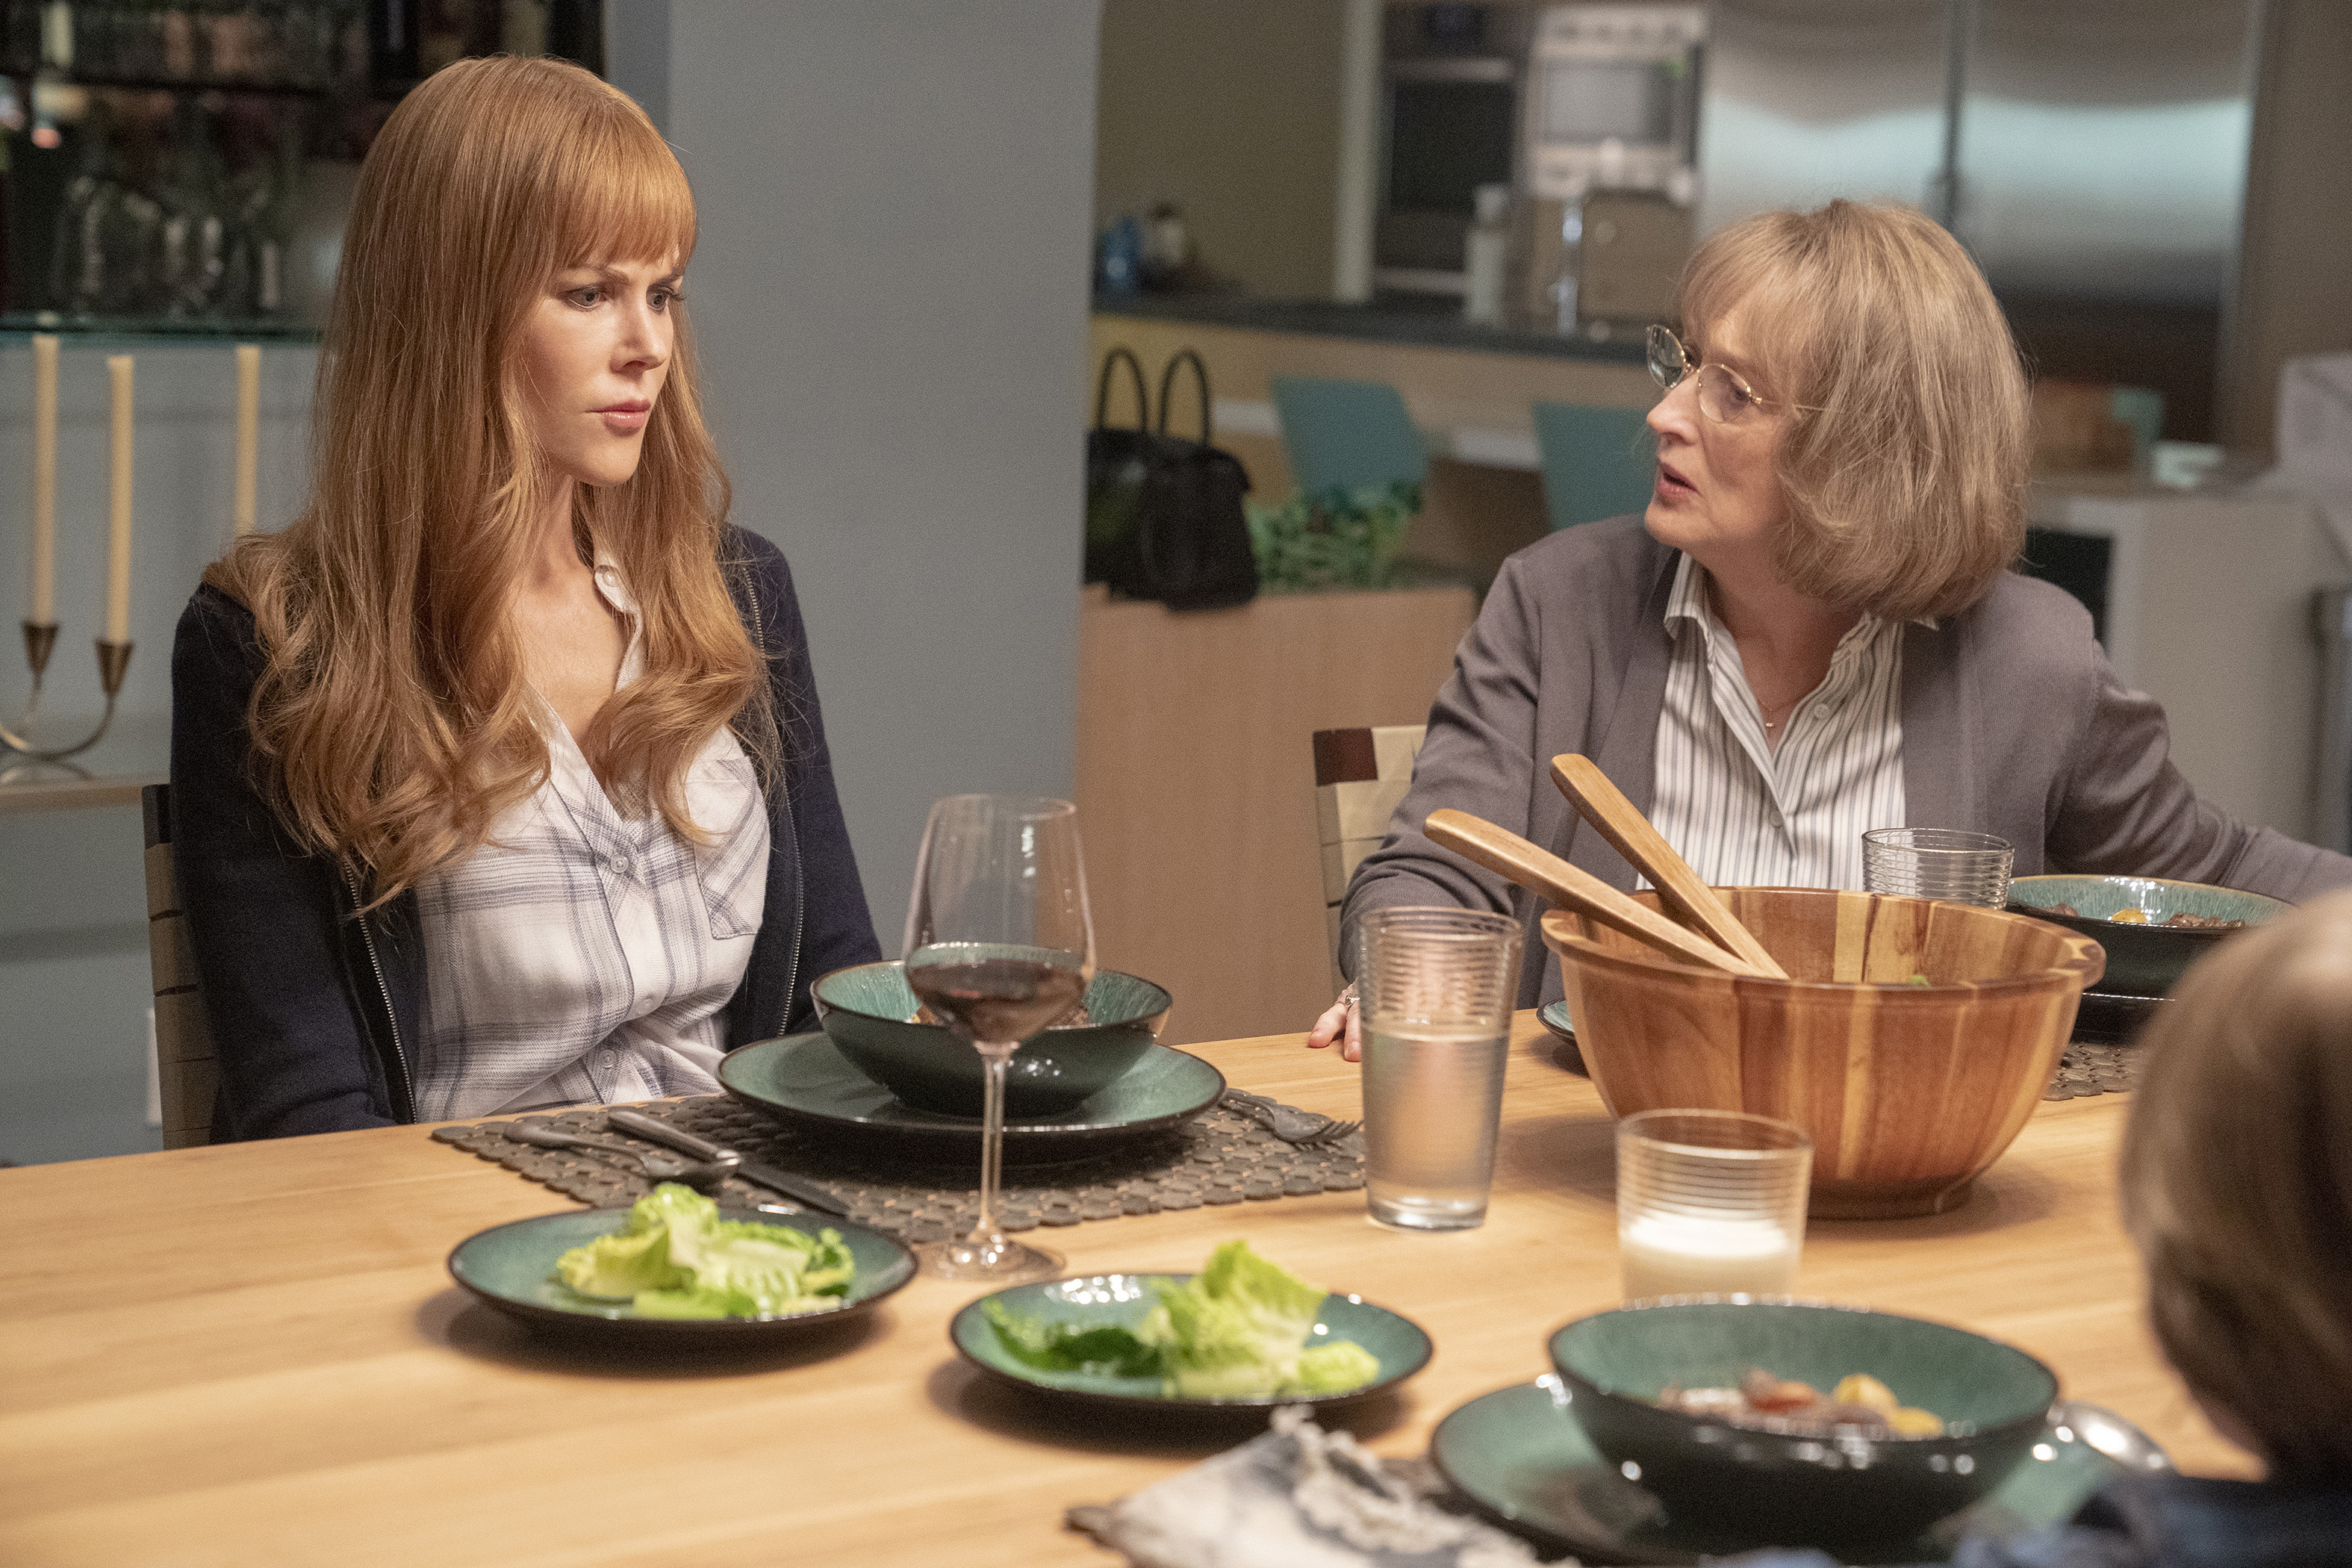 Nicole Kidman, a redheaded white woman, sits beside Meryl Streep, an older white woman with gray hair and glasses, on Big Little Lies